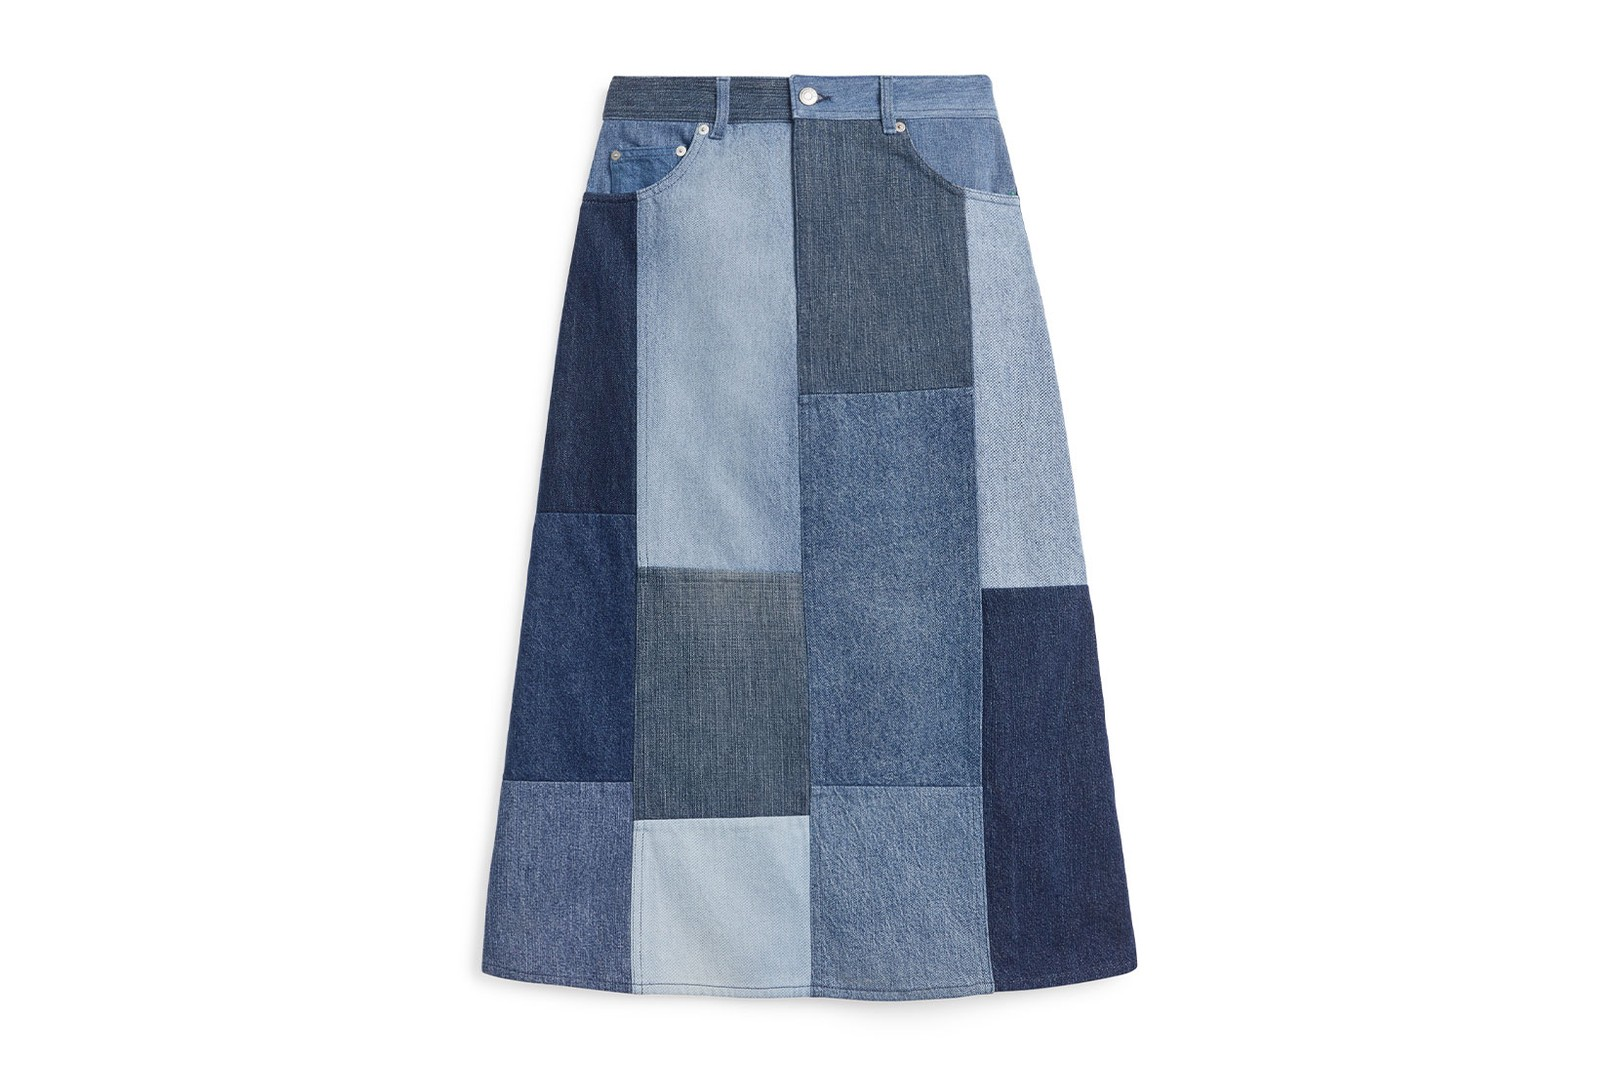 arket patchwork denim jeans sustainable post-consumer reycled shirts trousers tote bag